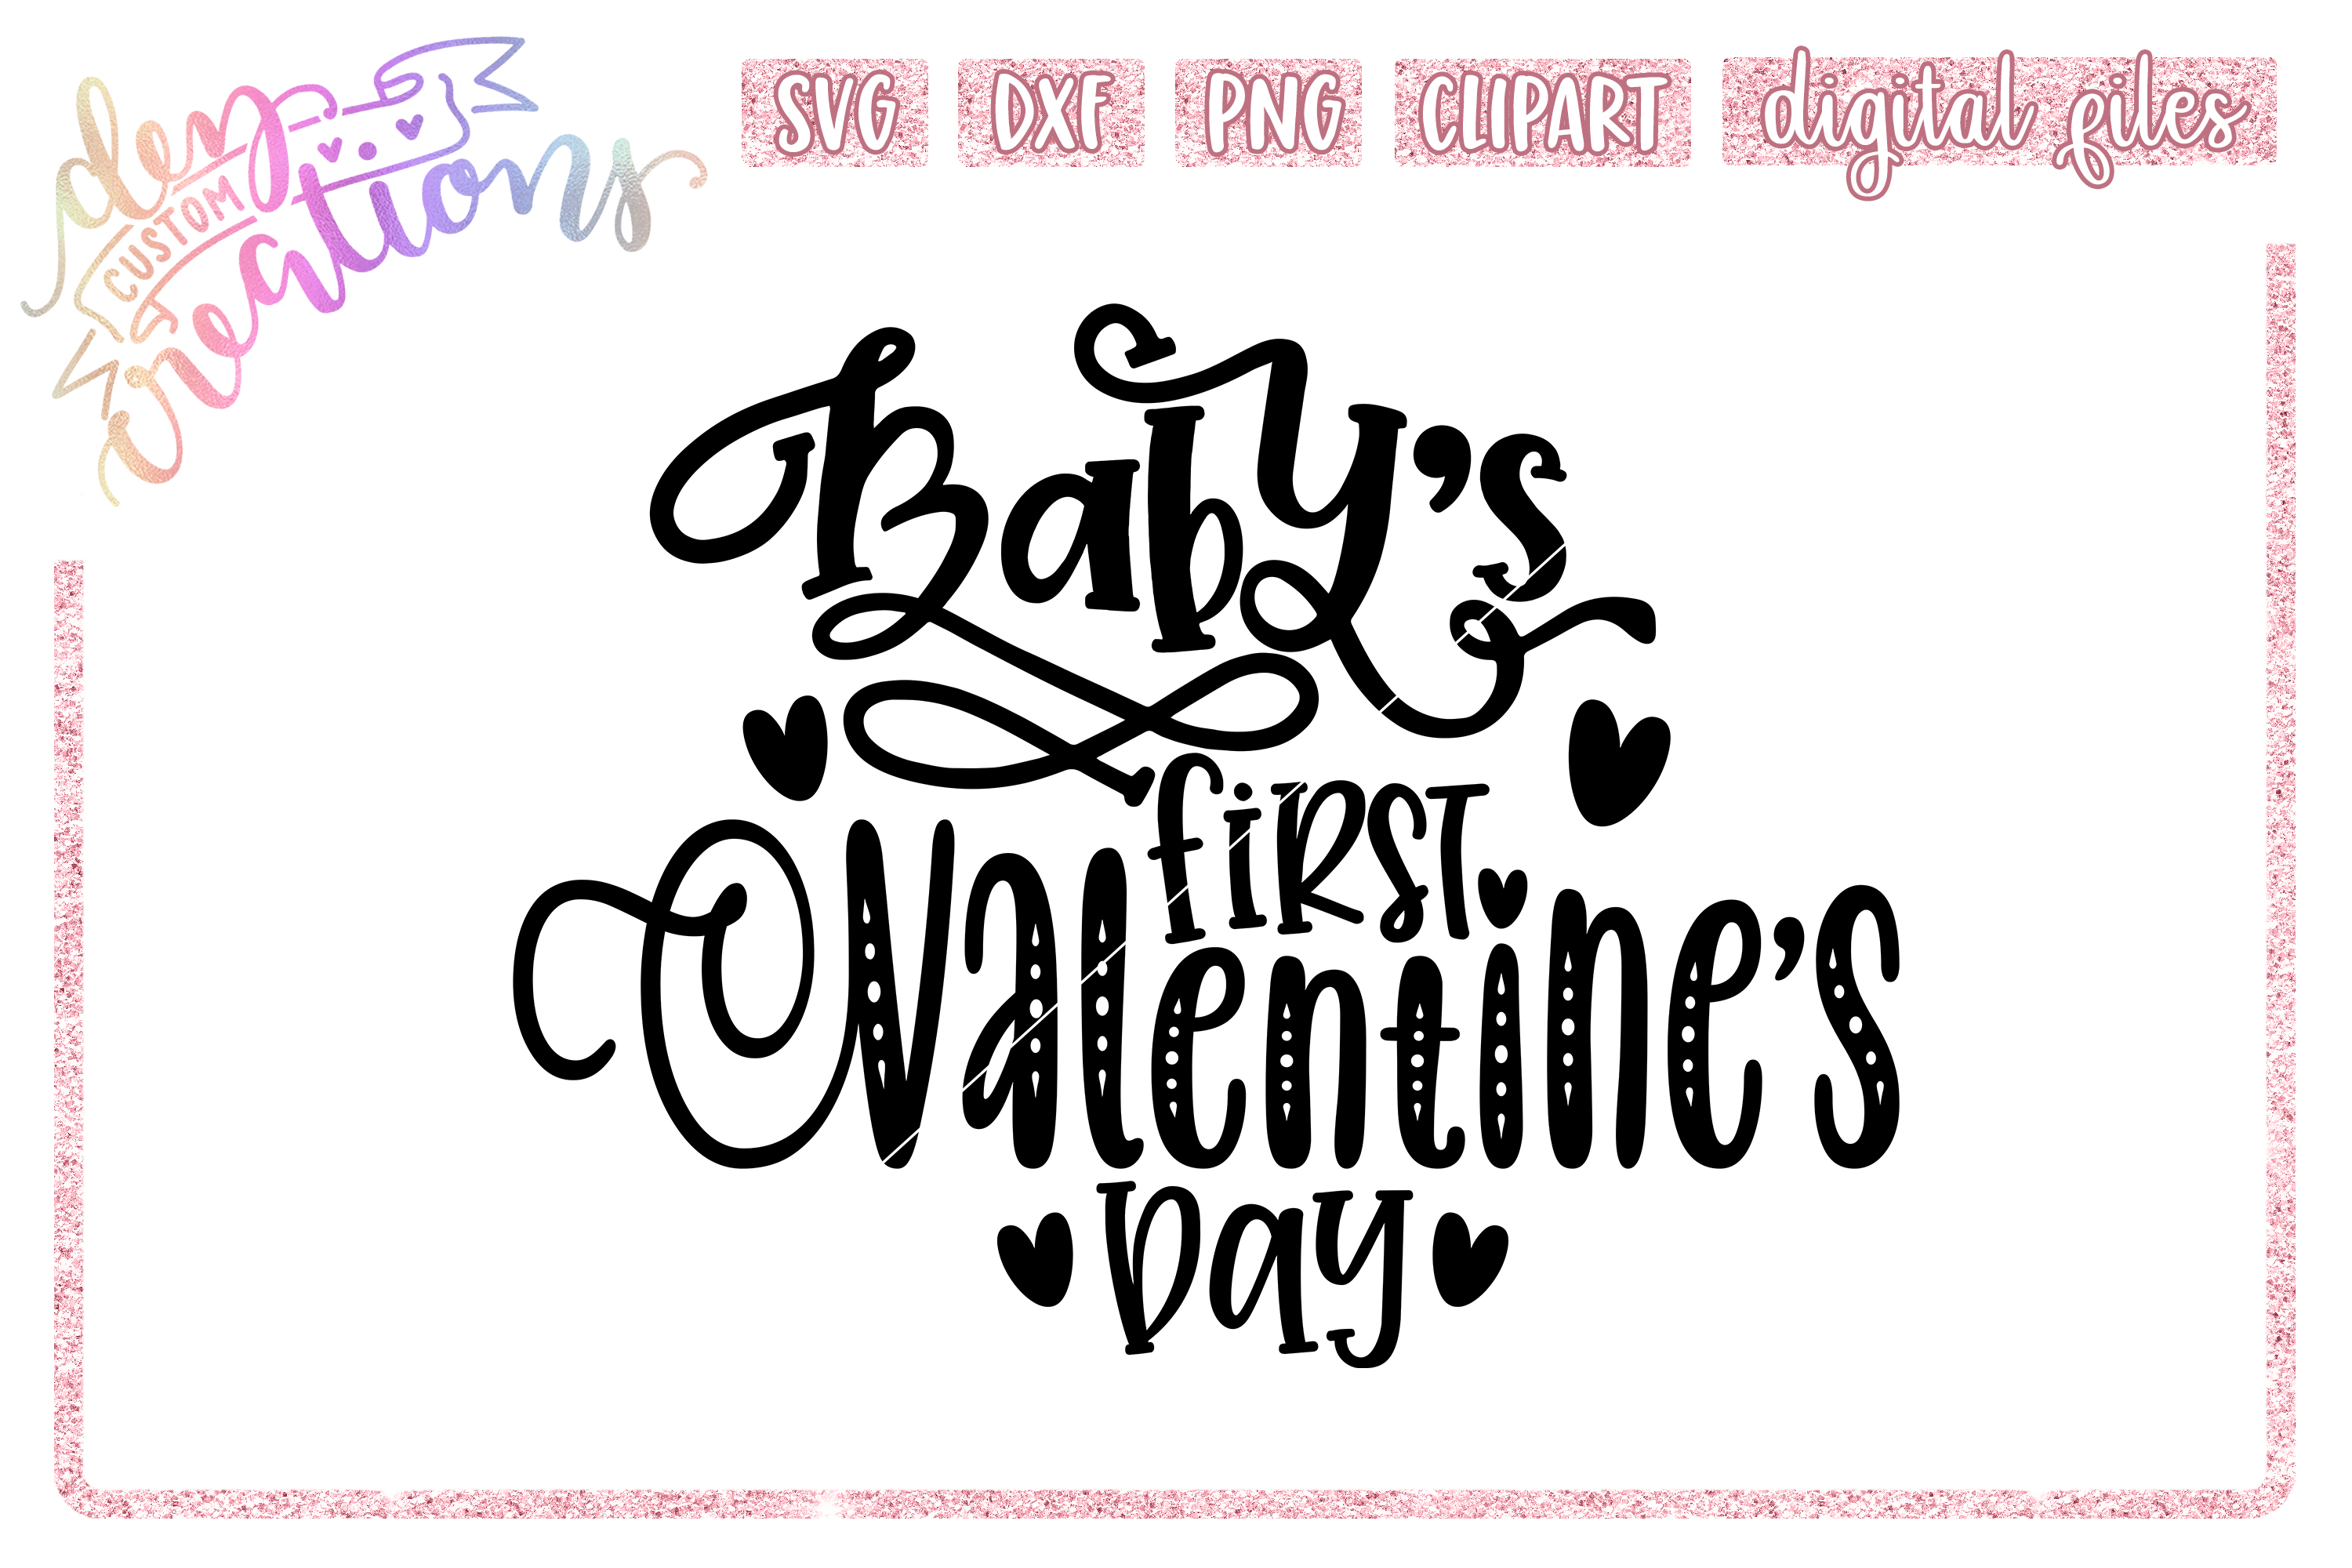 Baby's First Valentine's Day - SVG DXF PNG - Cut File example image 1